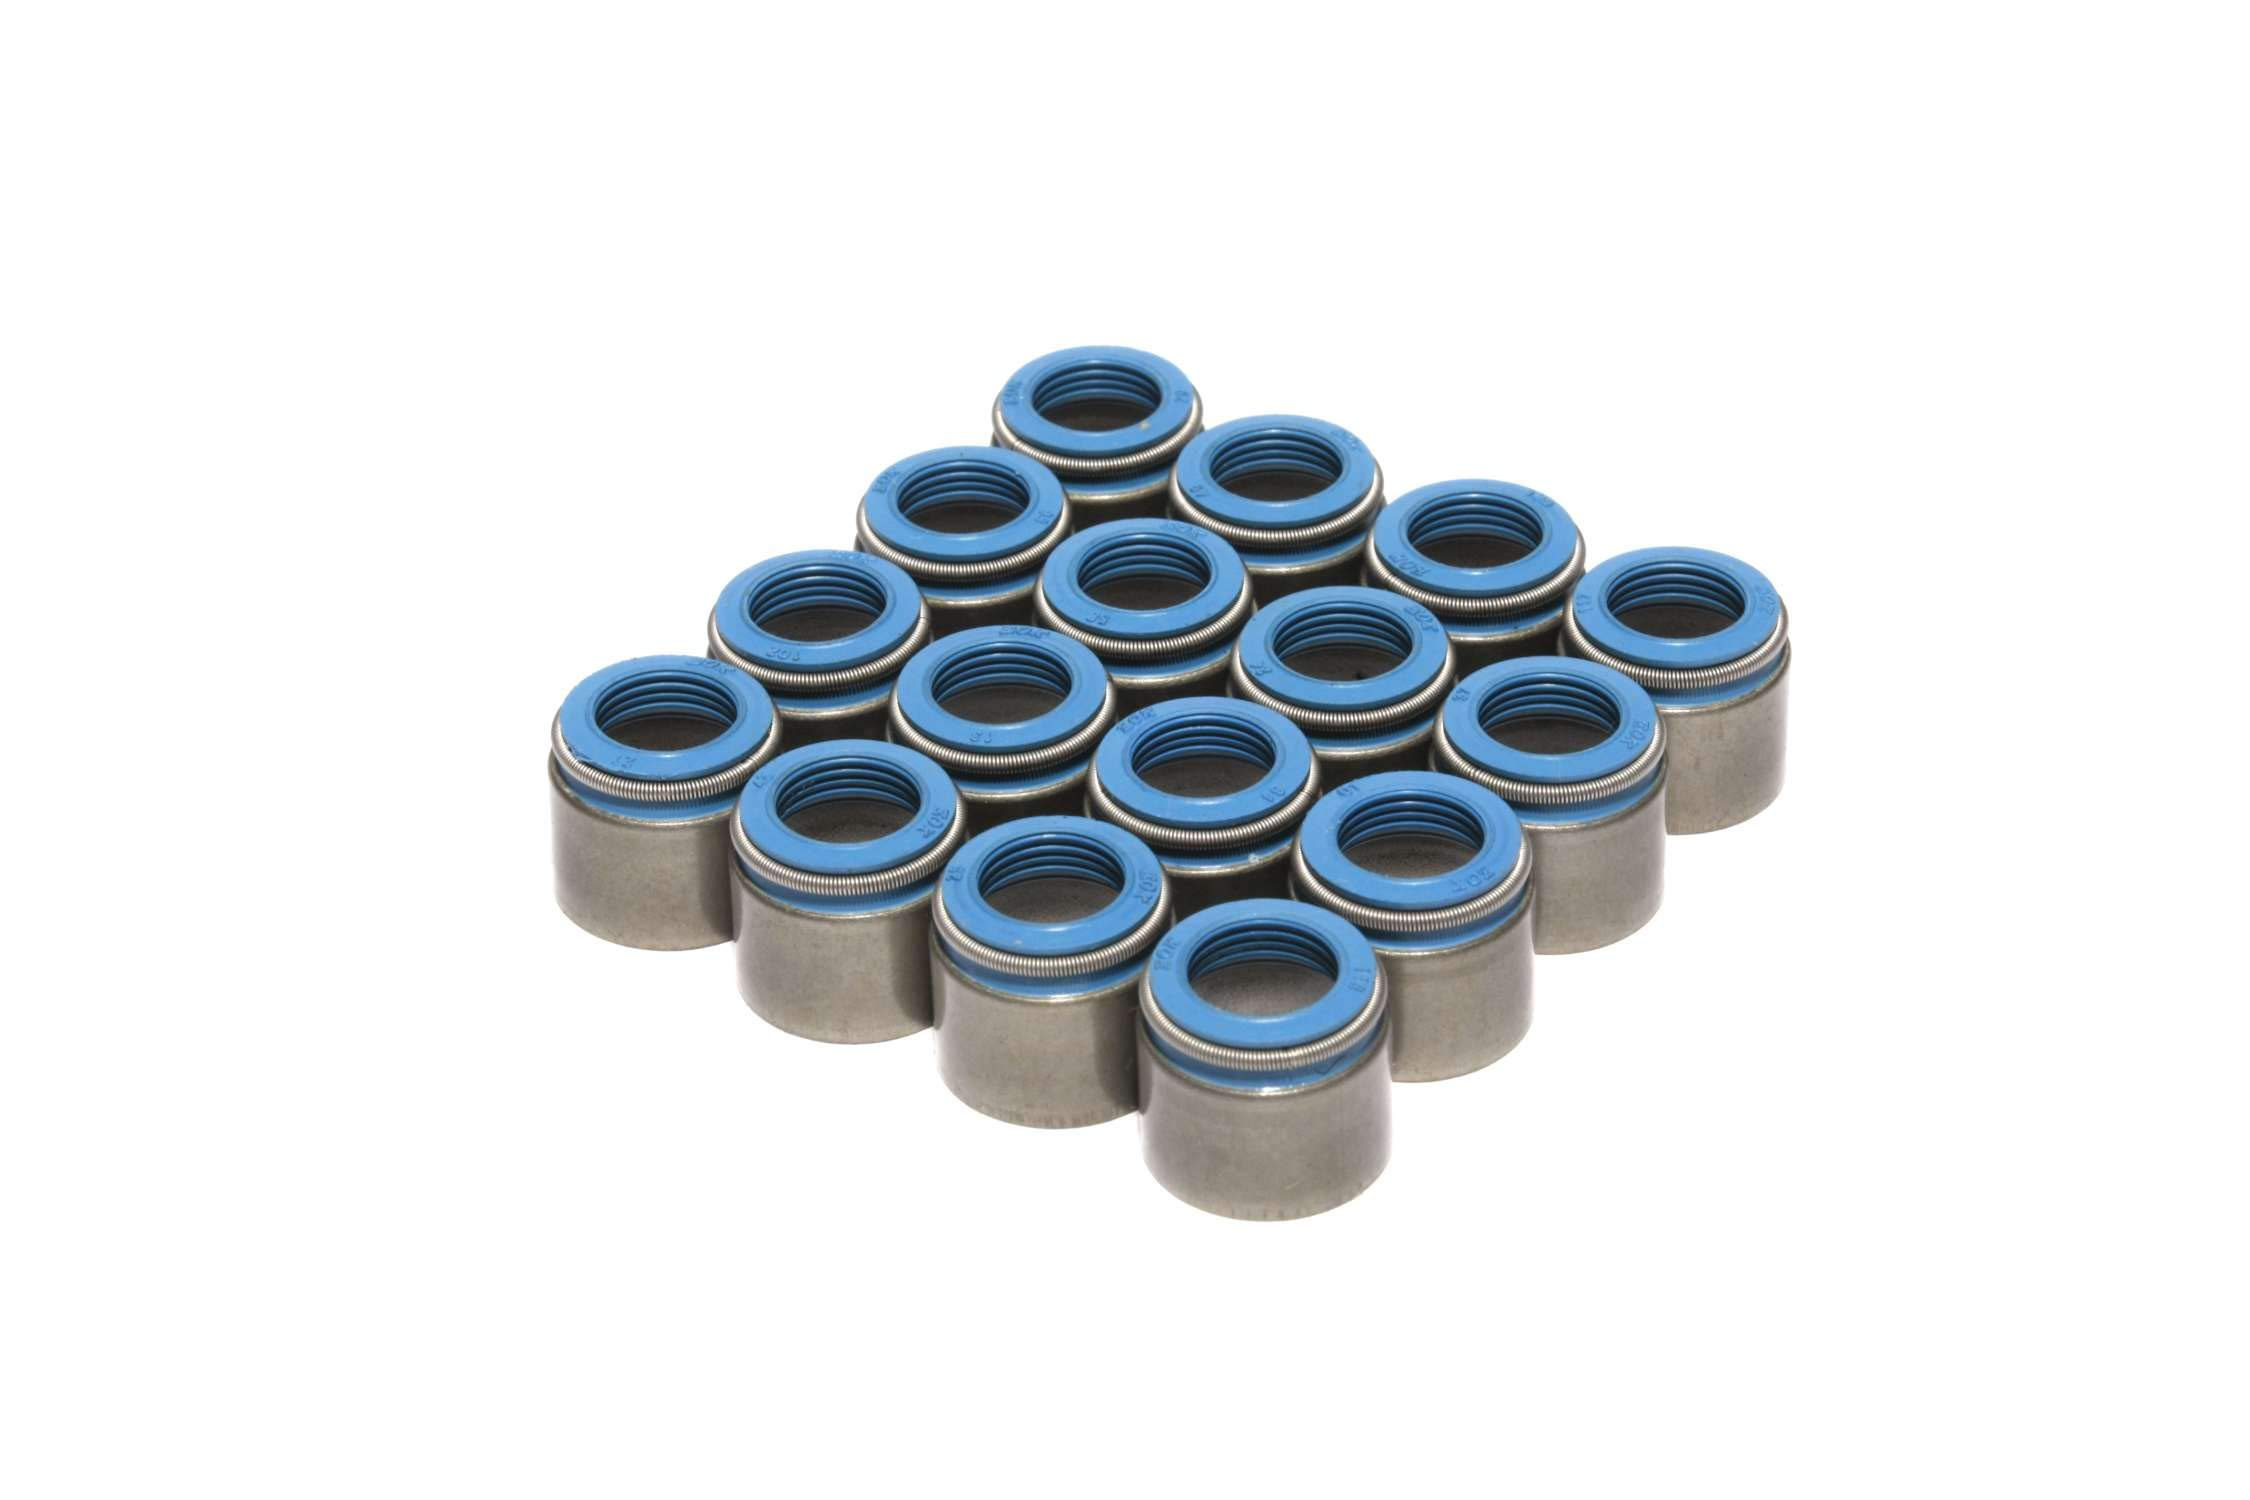 COMP Cams 522-16 Metal Body Viton Seals for .530'' Guide Size, 3/8'' Valve Stem by Comp Cams